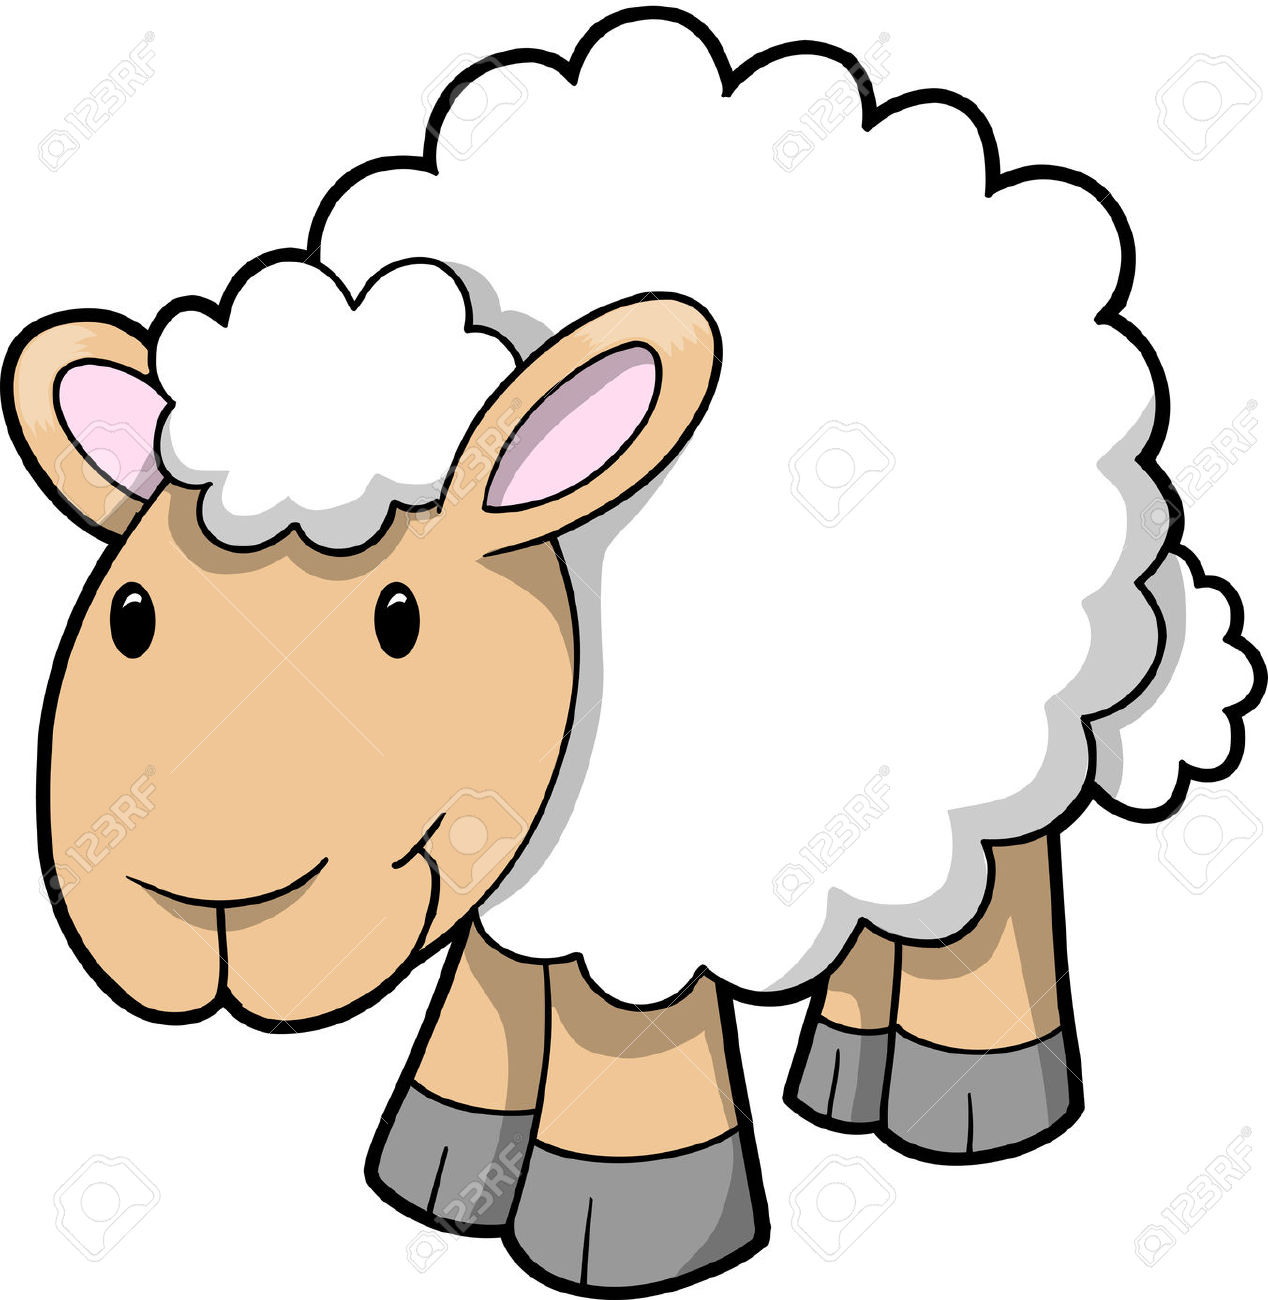 Sheep Clipart Free - .-Sheep clipart free - .-16